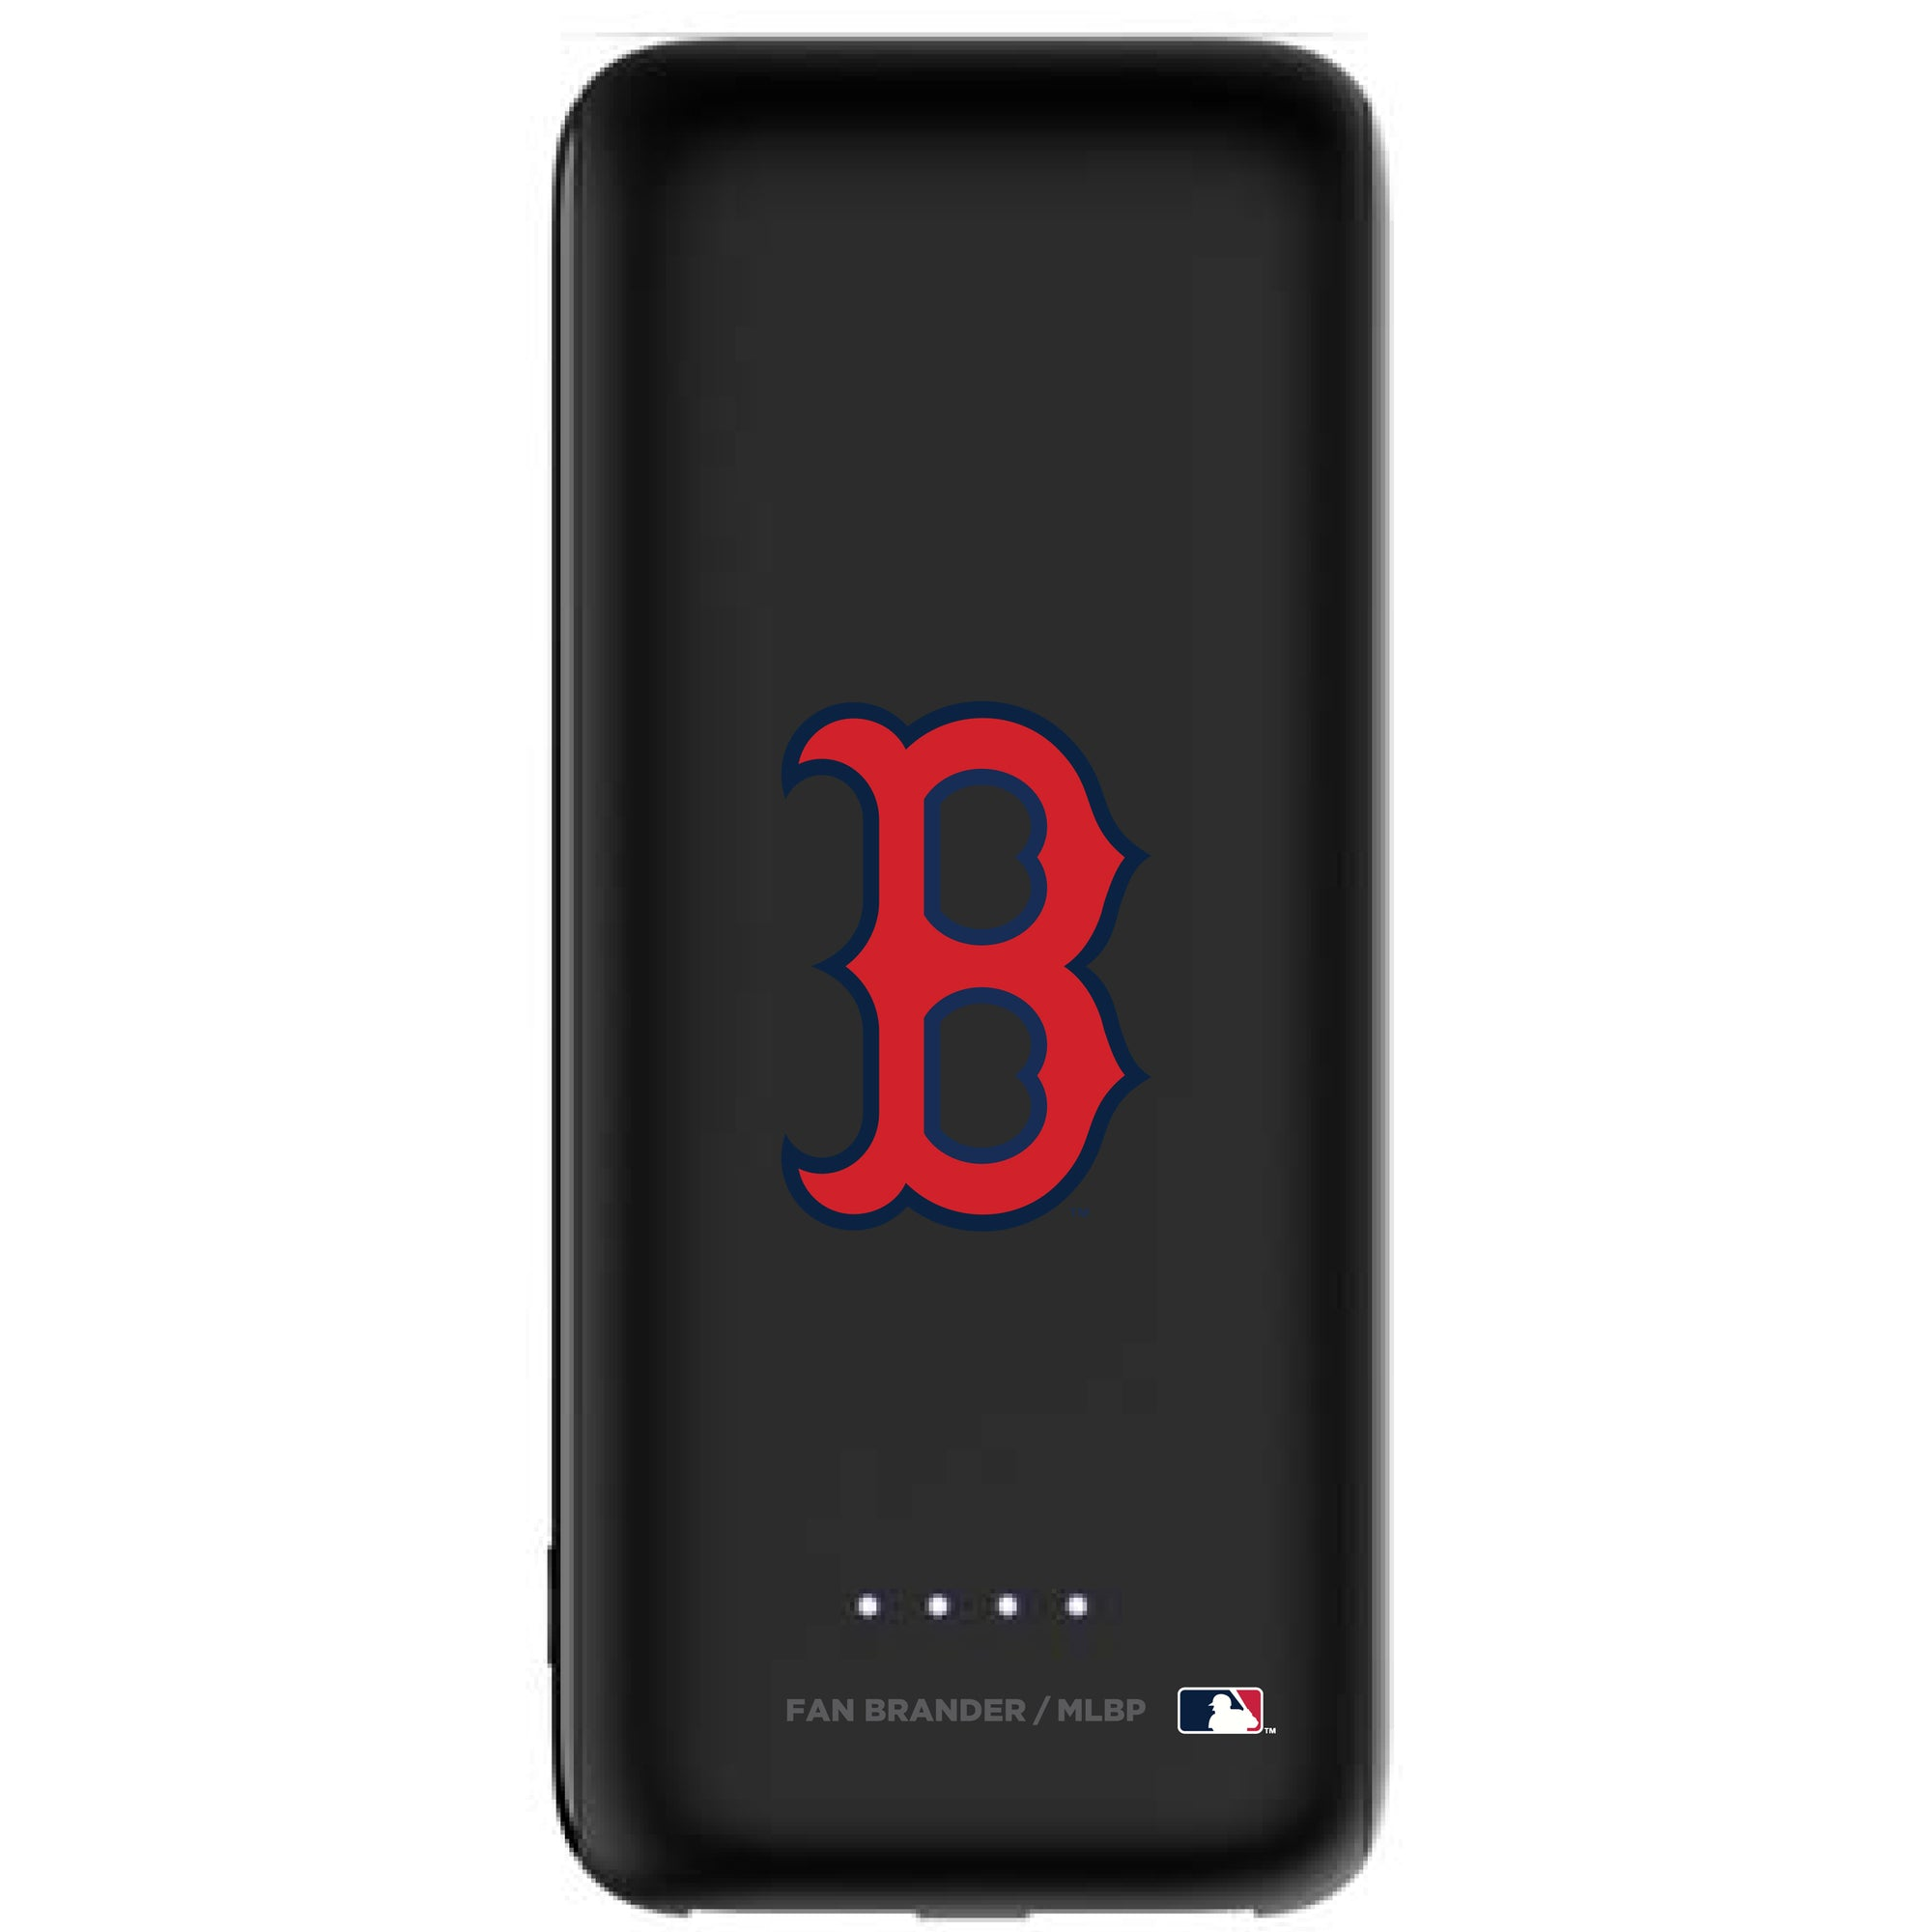 Boston Red Sox Power Boost Mini 5,200 mAH